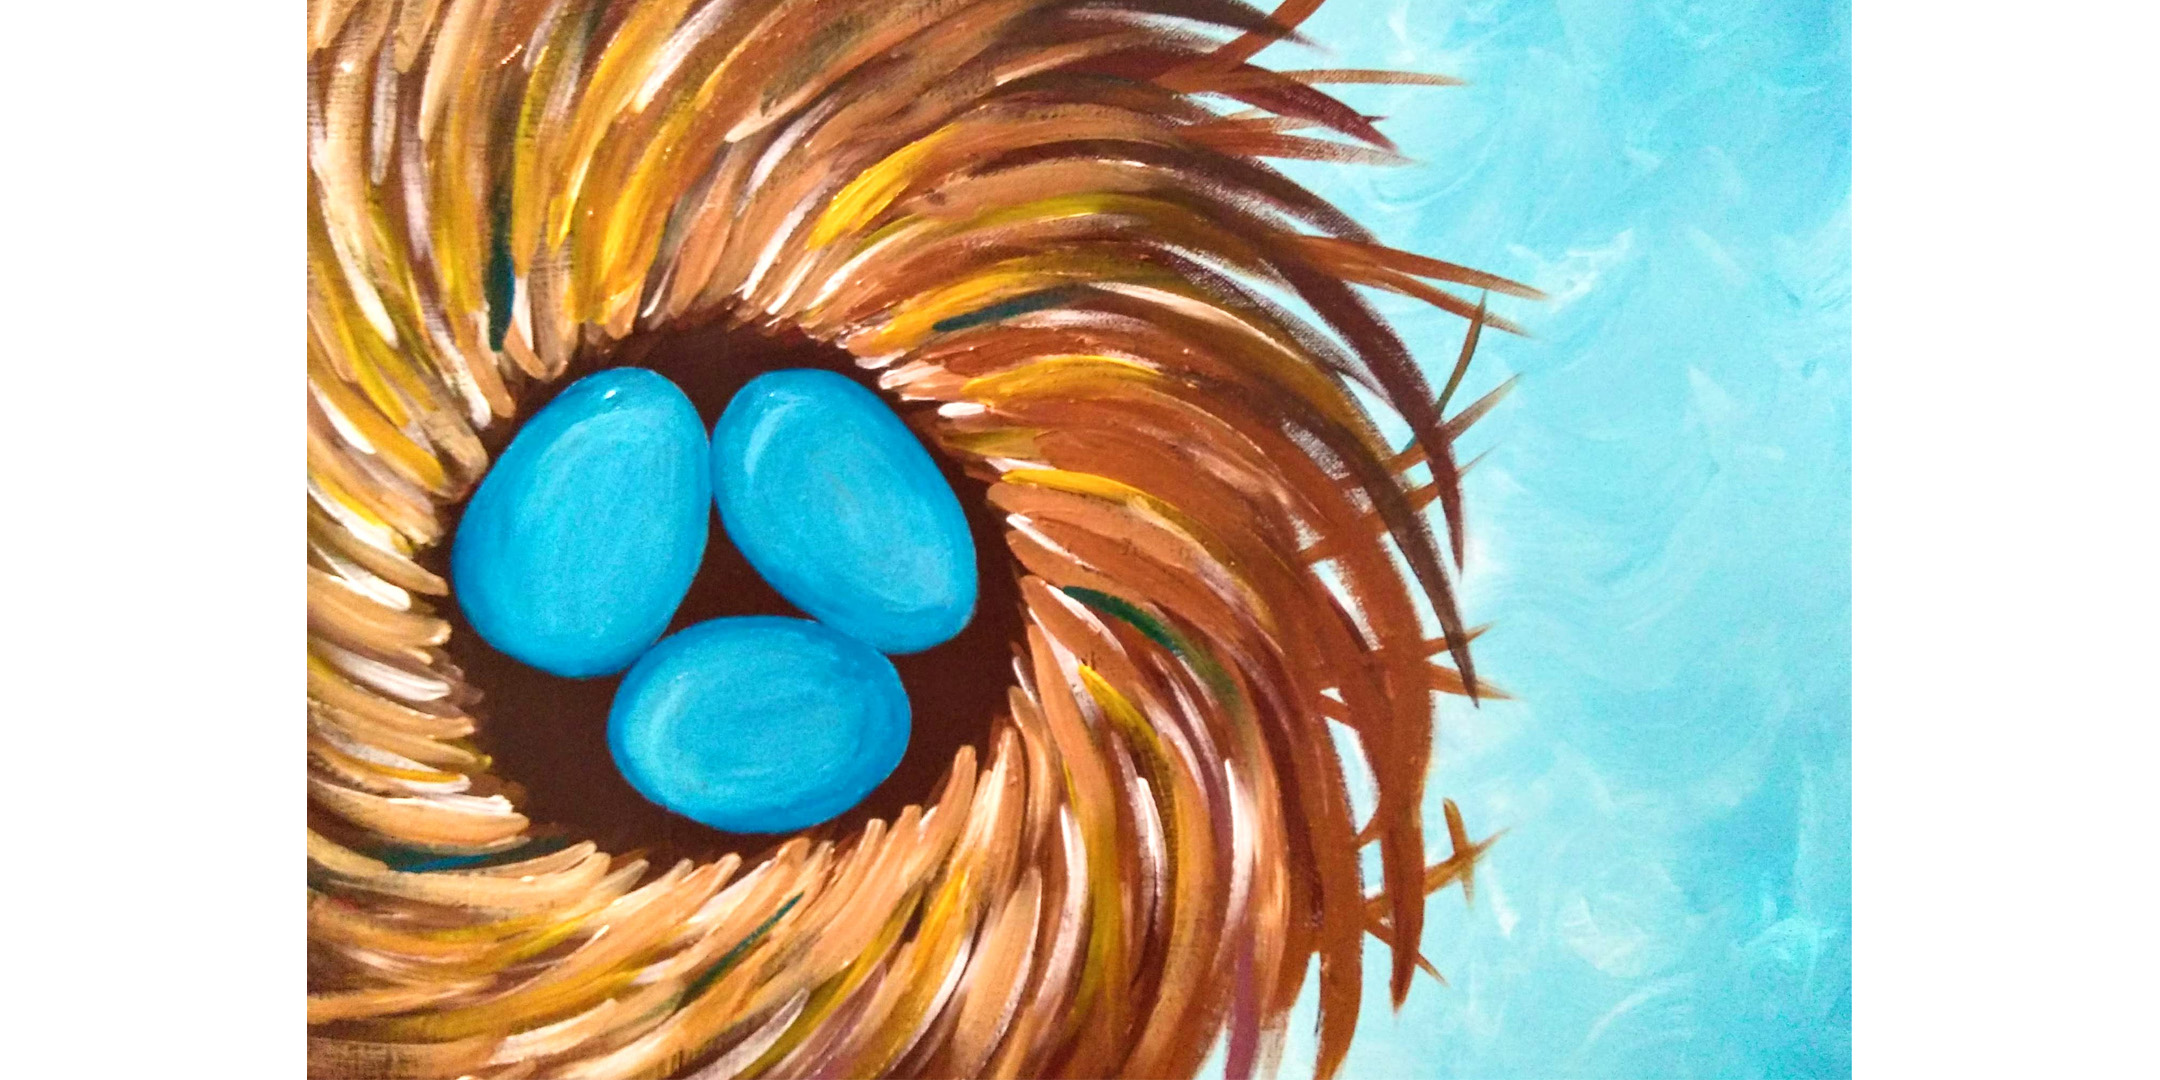 July 10th 1pm Sip and Paint